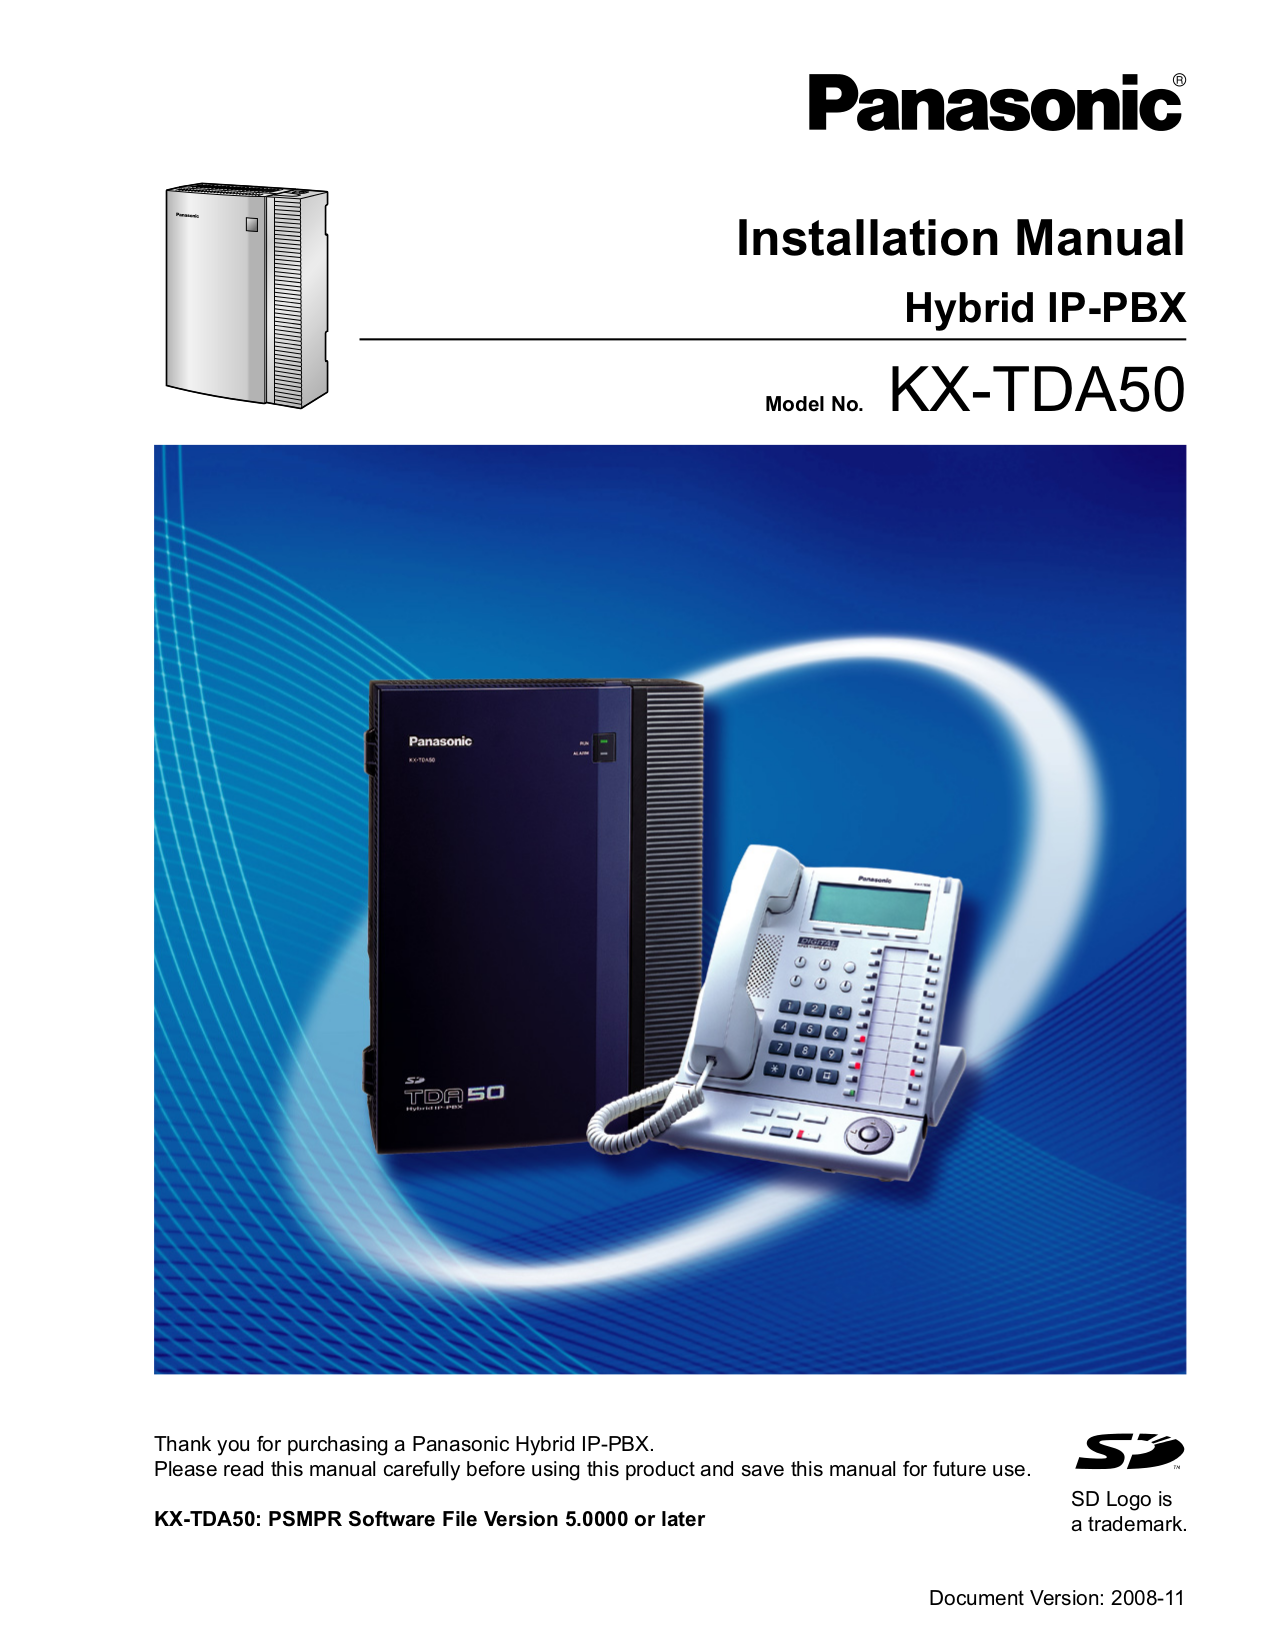 panasonic kx tg153m 6.0 manual